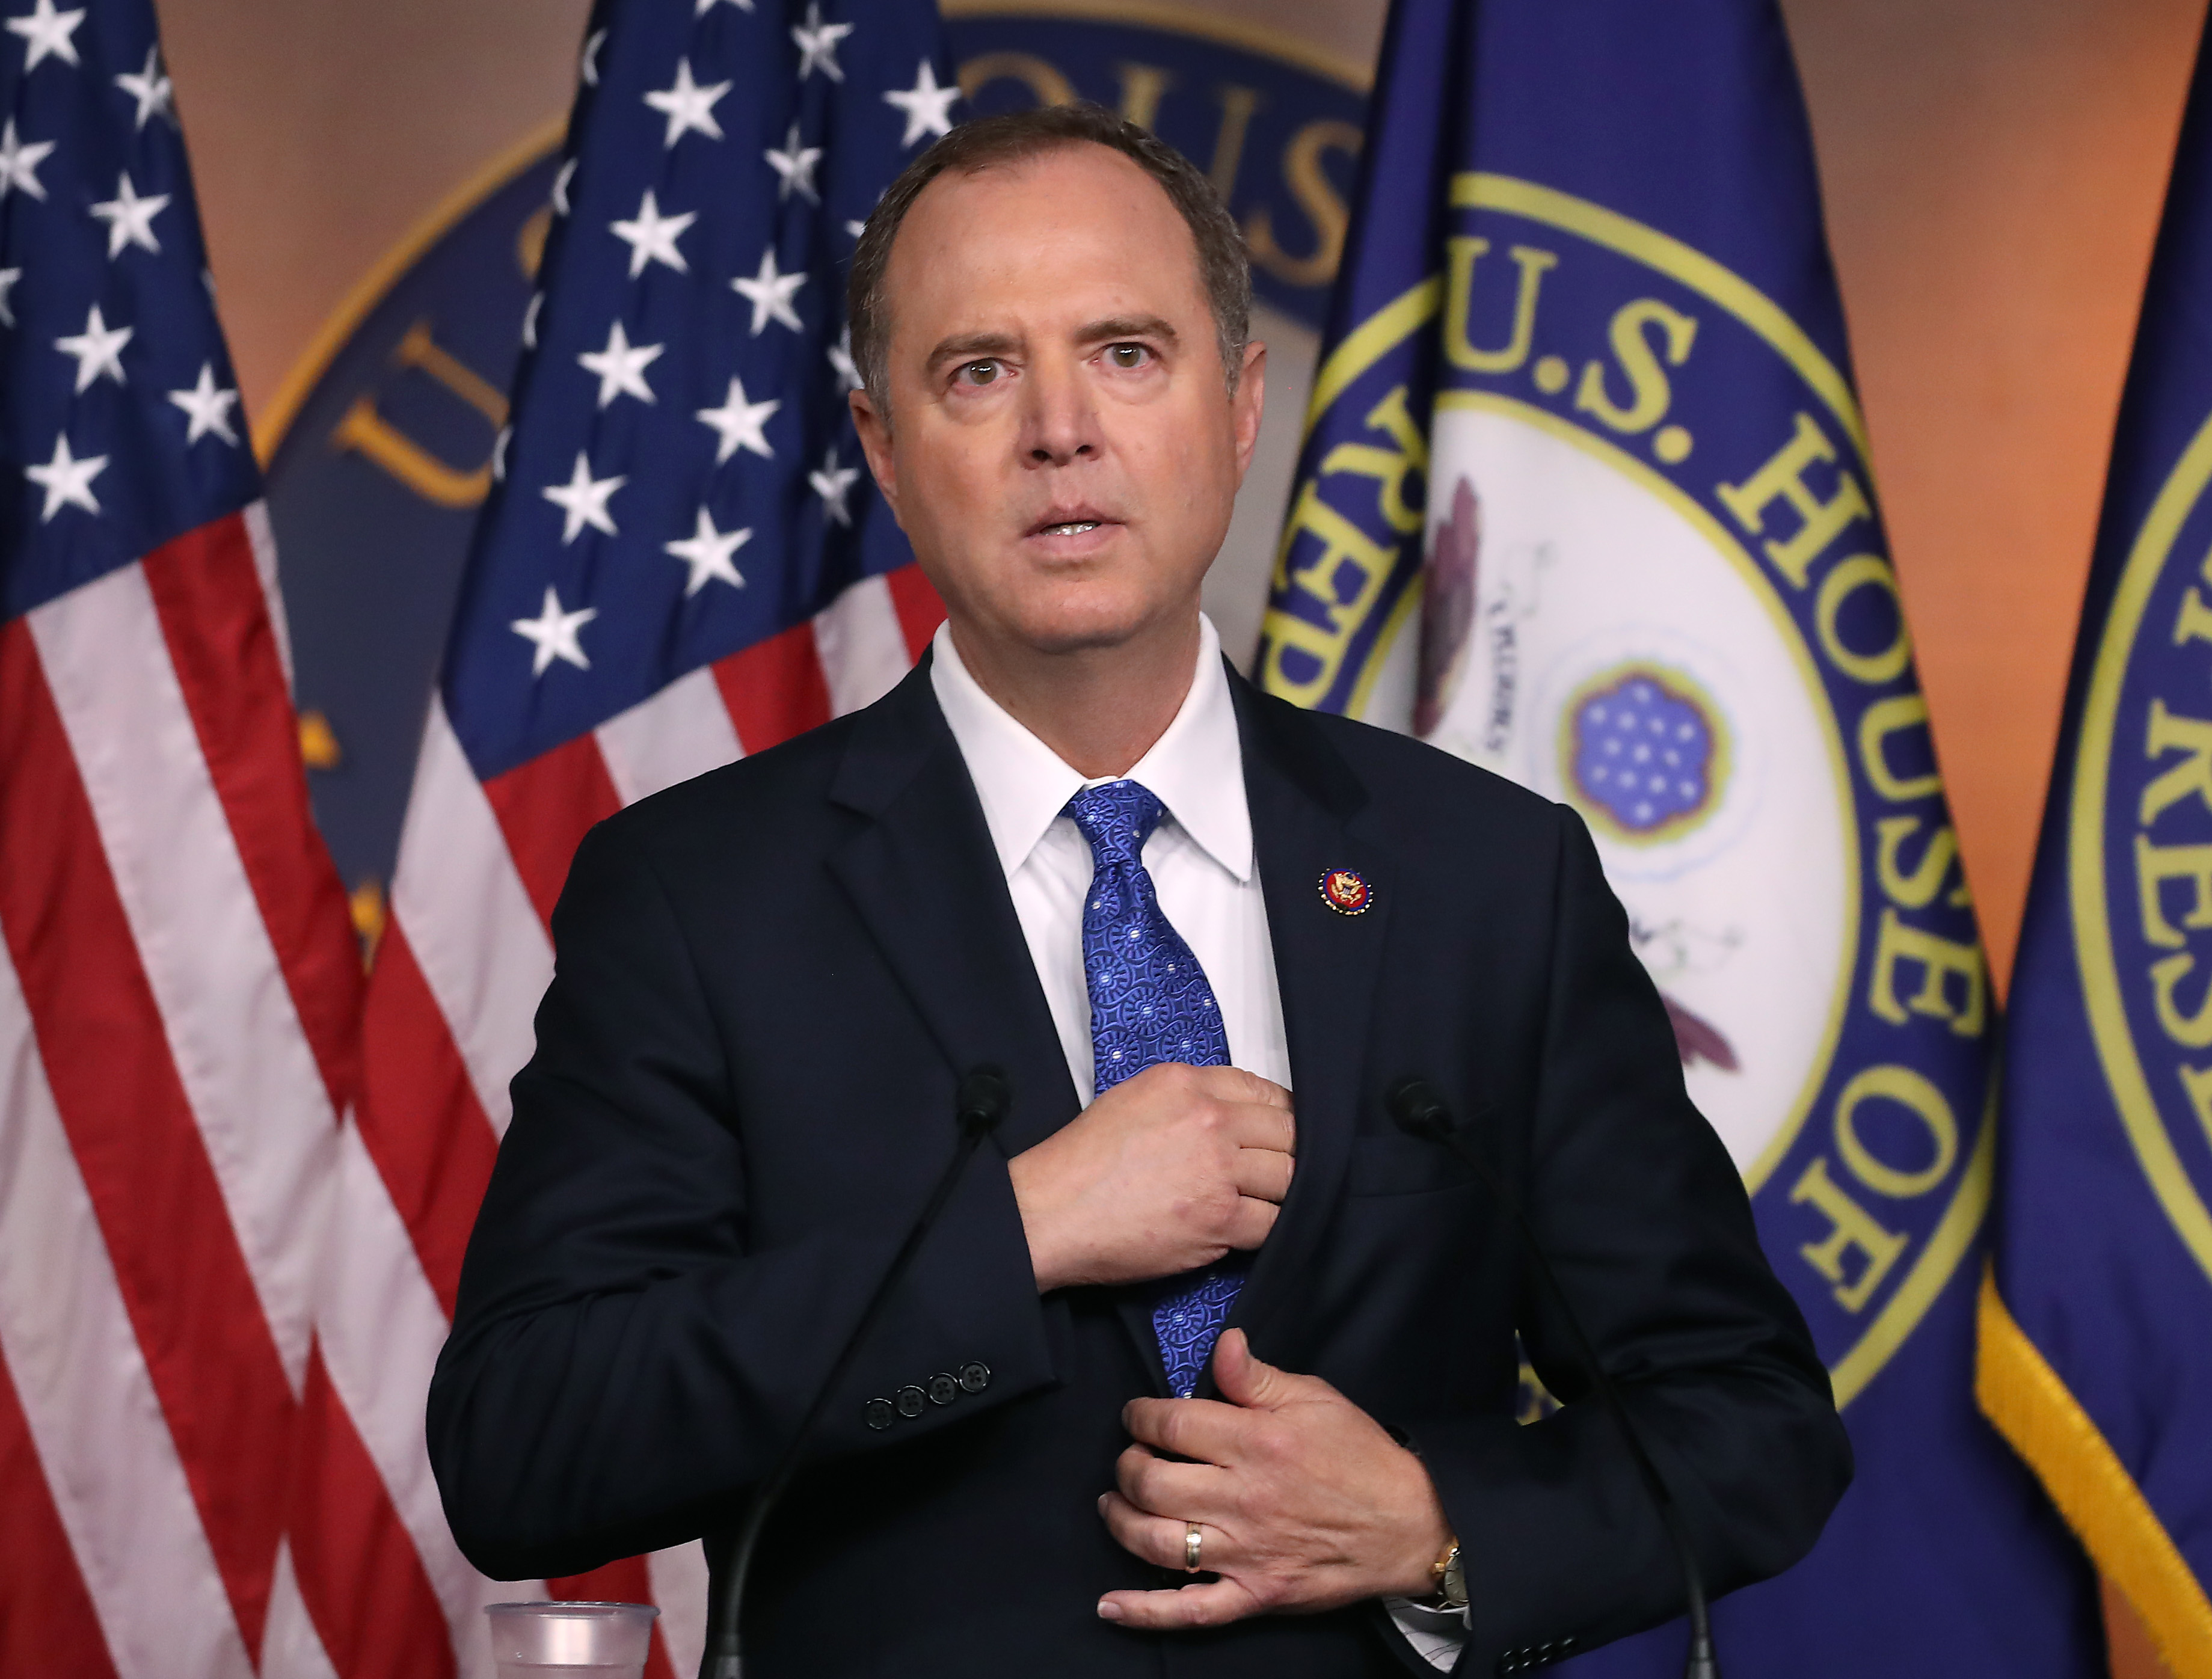 WASHINGTON, DC - SEPTEMBER 25: House Intelligence Chairman Rep. Adam Schiff (D-CA) speaks to the media one day after House Speaker Nancy Pelosi (D-CA) announced that Democrats will start an impeachment injury of U.S. President Donald Trump, on September 25, 2019 in Washington, DC. Yesterday Pelosi announced a formal impeachment inquiry after allegations that President Donald Trump sought to pressure the president of Ukraine to investigate leading Democratic presidential contender, former Vice President Joe Biden and his son, which was the subject of a reported whistle-blower complaint that the Trump administration has withheld from Congress. (Photo by Mark Wilson/Getty Images)